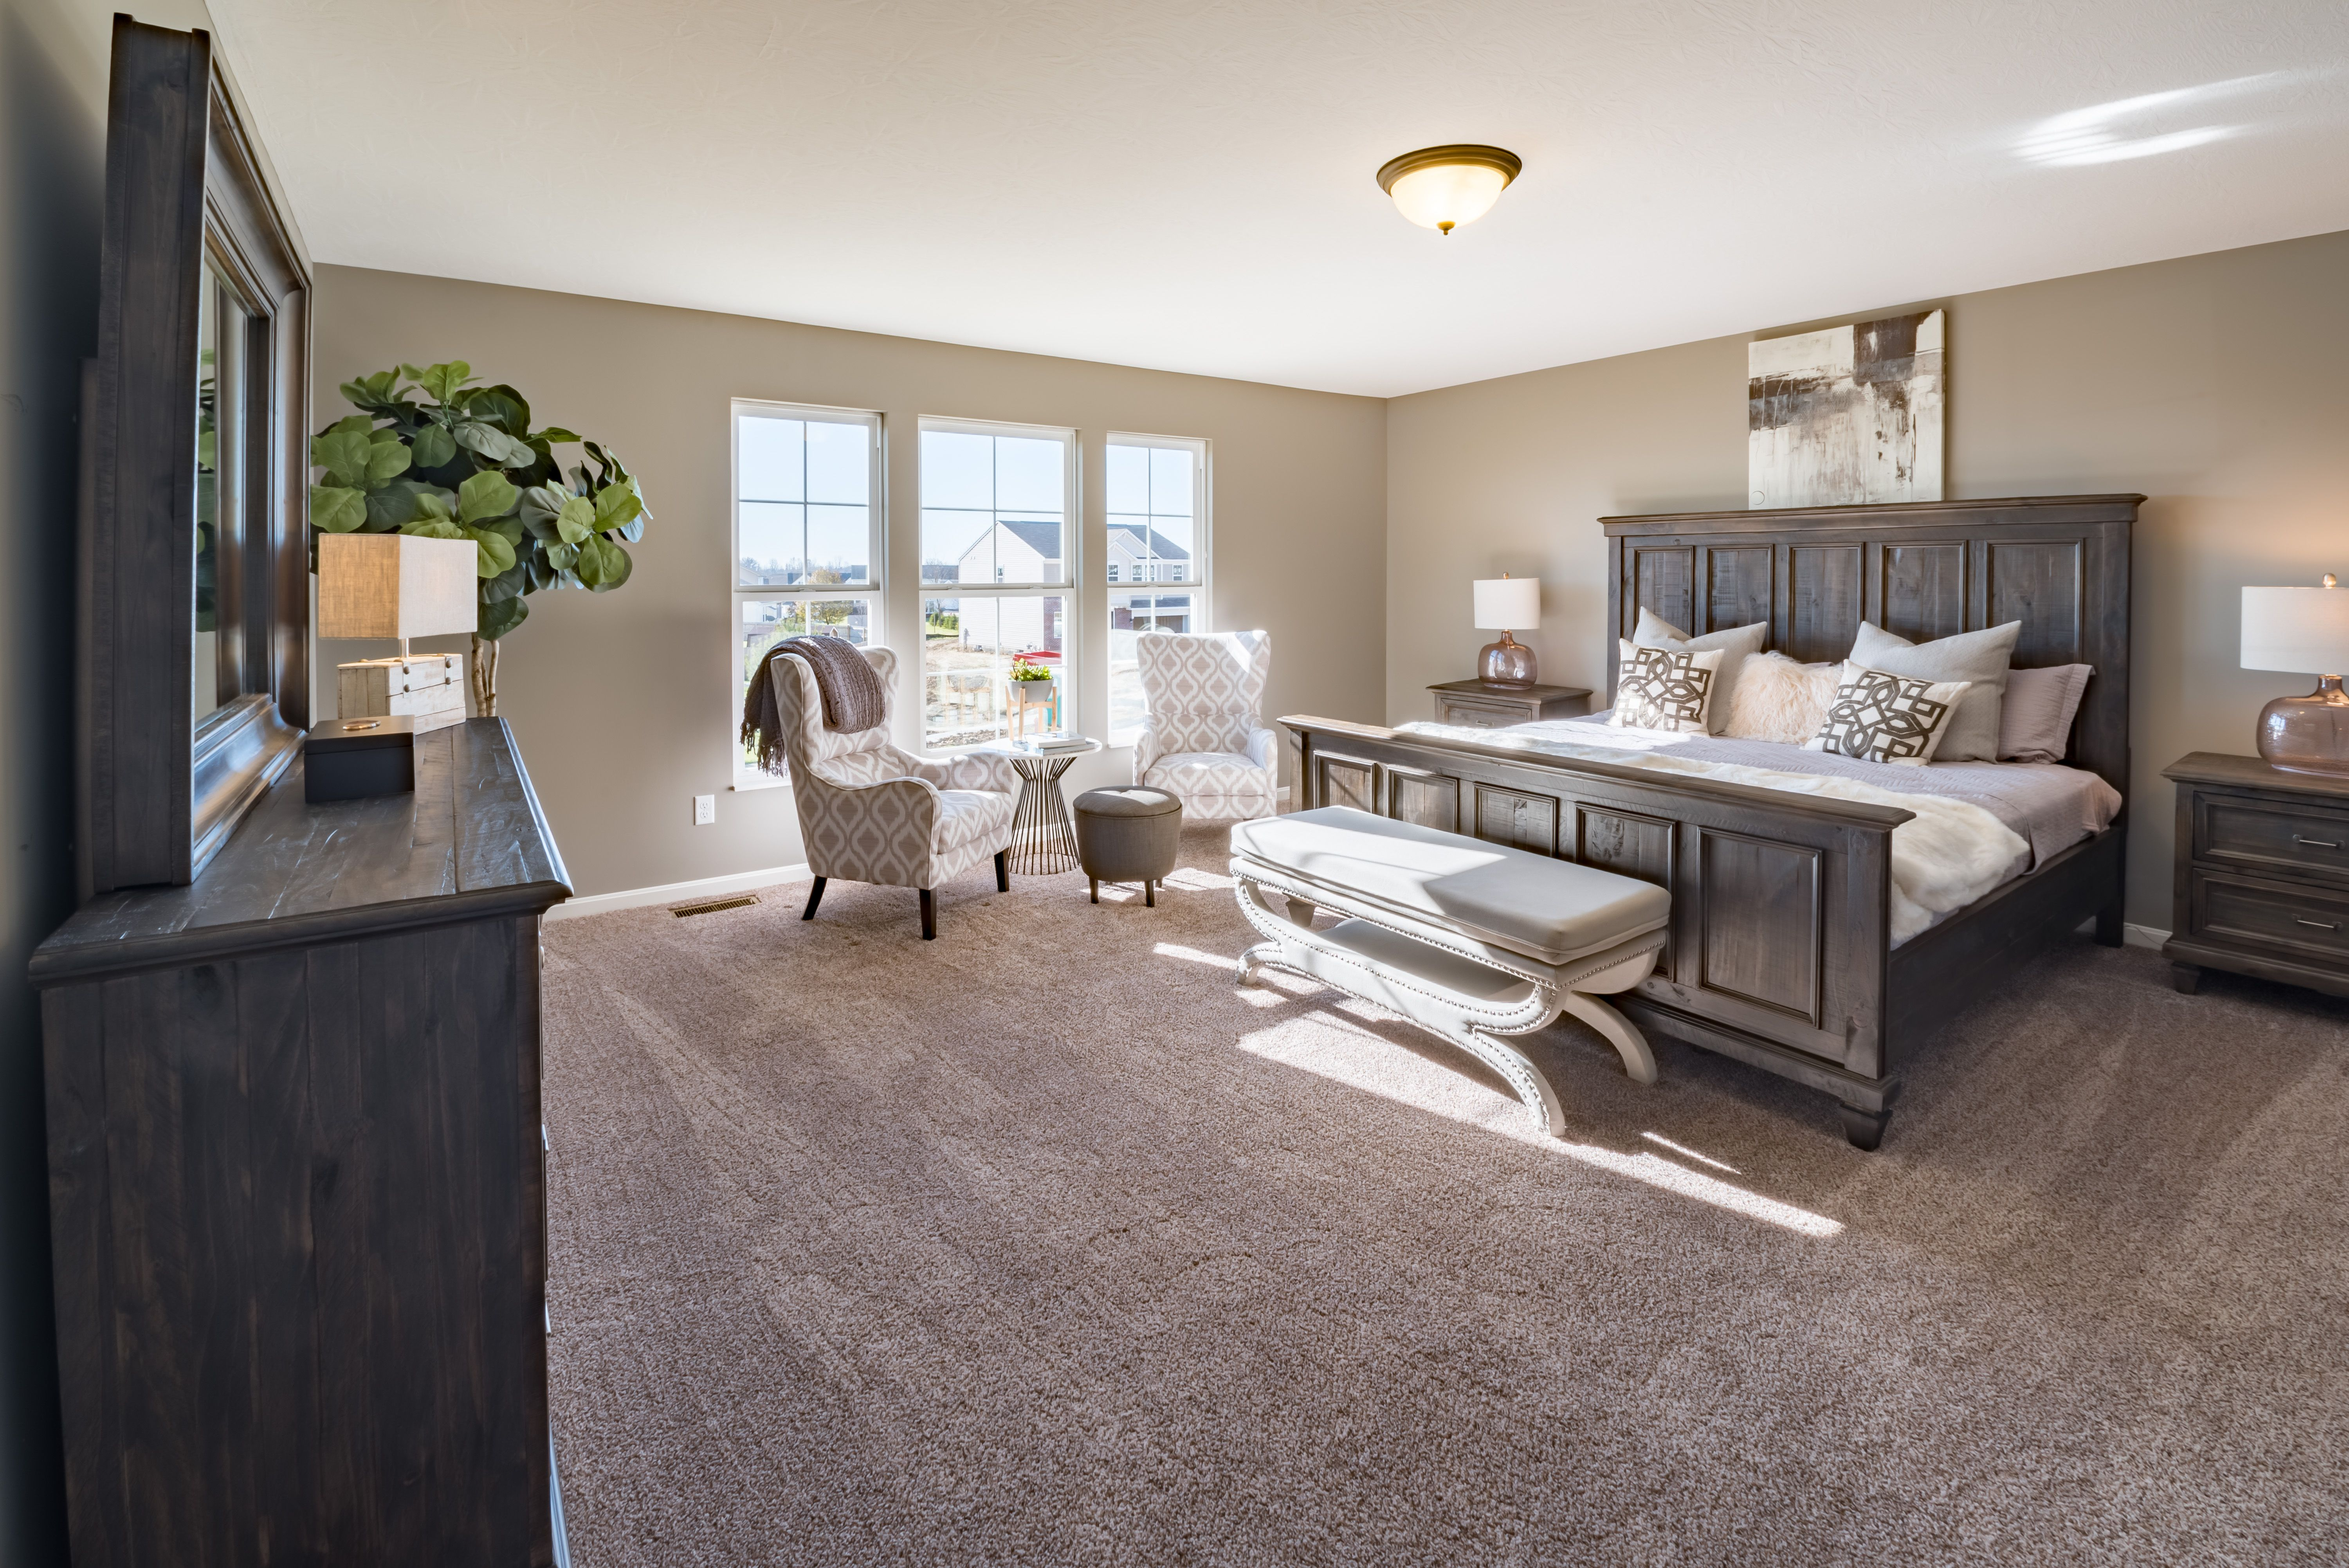 Bedroom featured in the Denali By Fischer Homes  in Louisville, KY